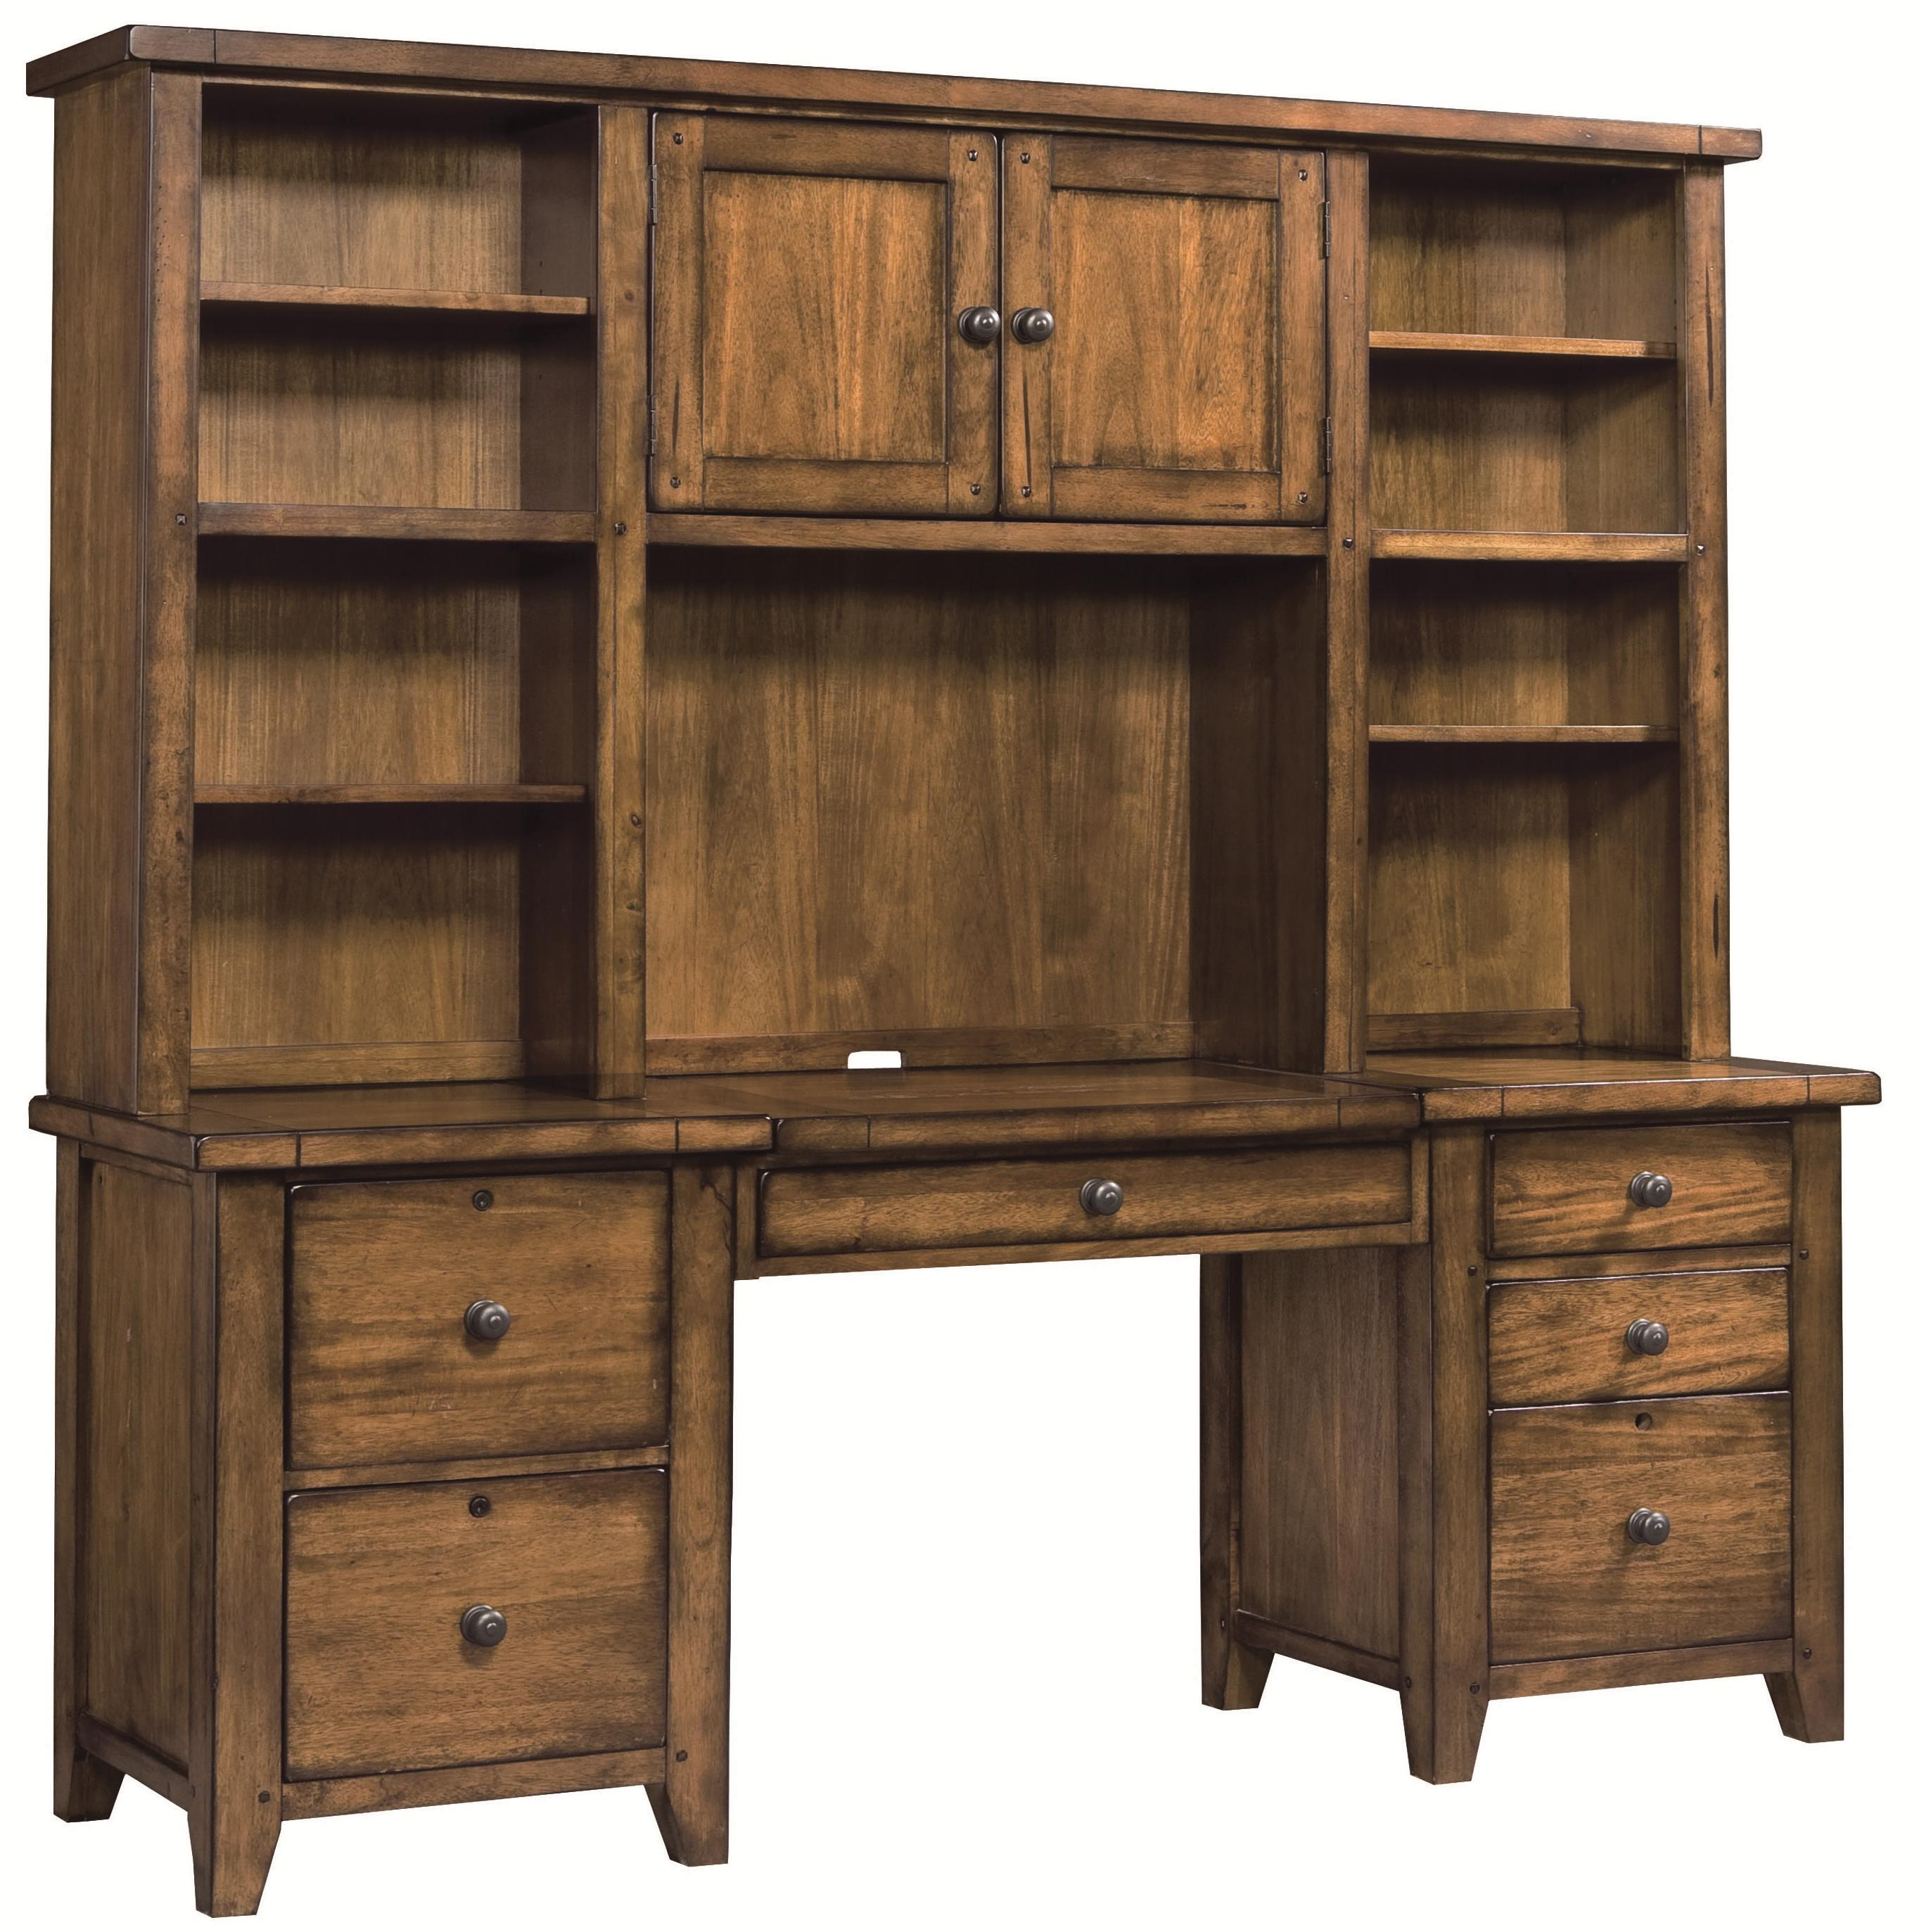 computer with oak home file shipping today product hutch drawers espresso cabinet pedestal and overstock free collection cabot drawer garden desk corner